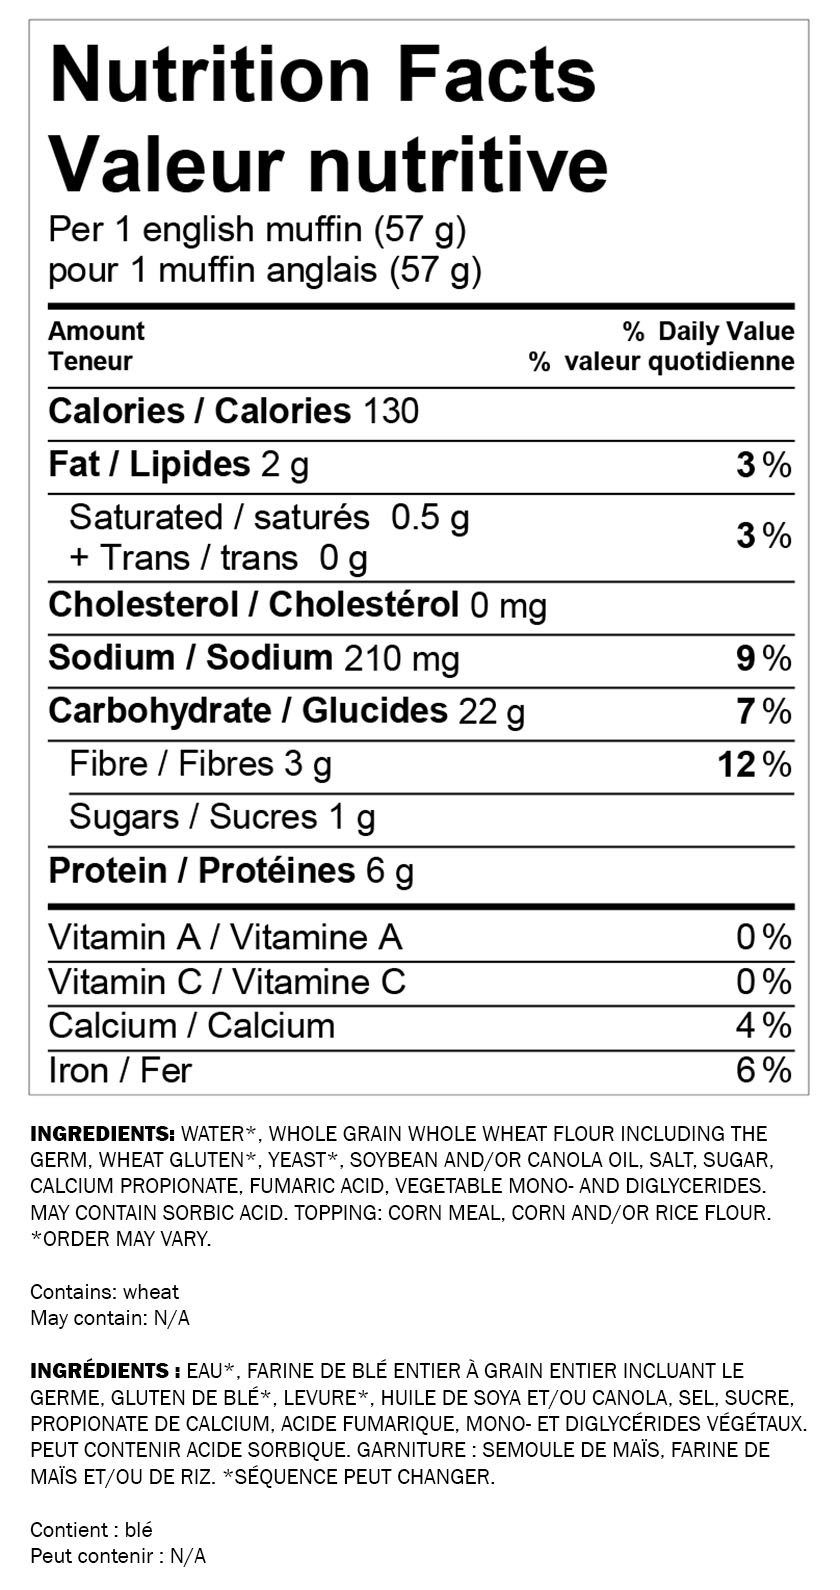 Nutritional information for Wonder® Whole Wheat English Muffin 6pk